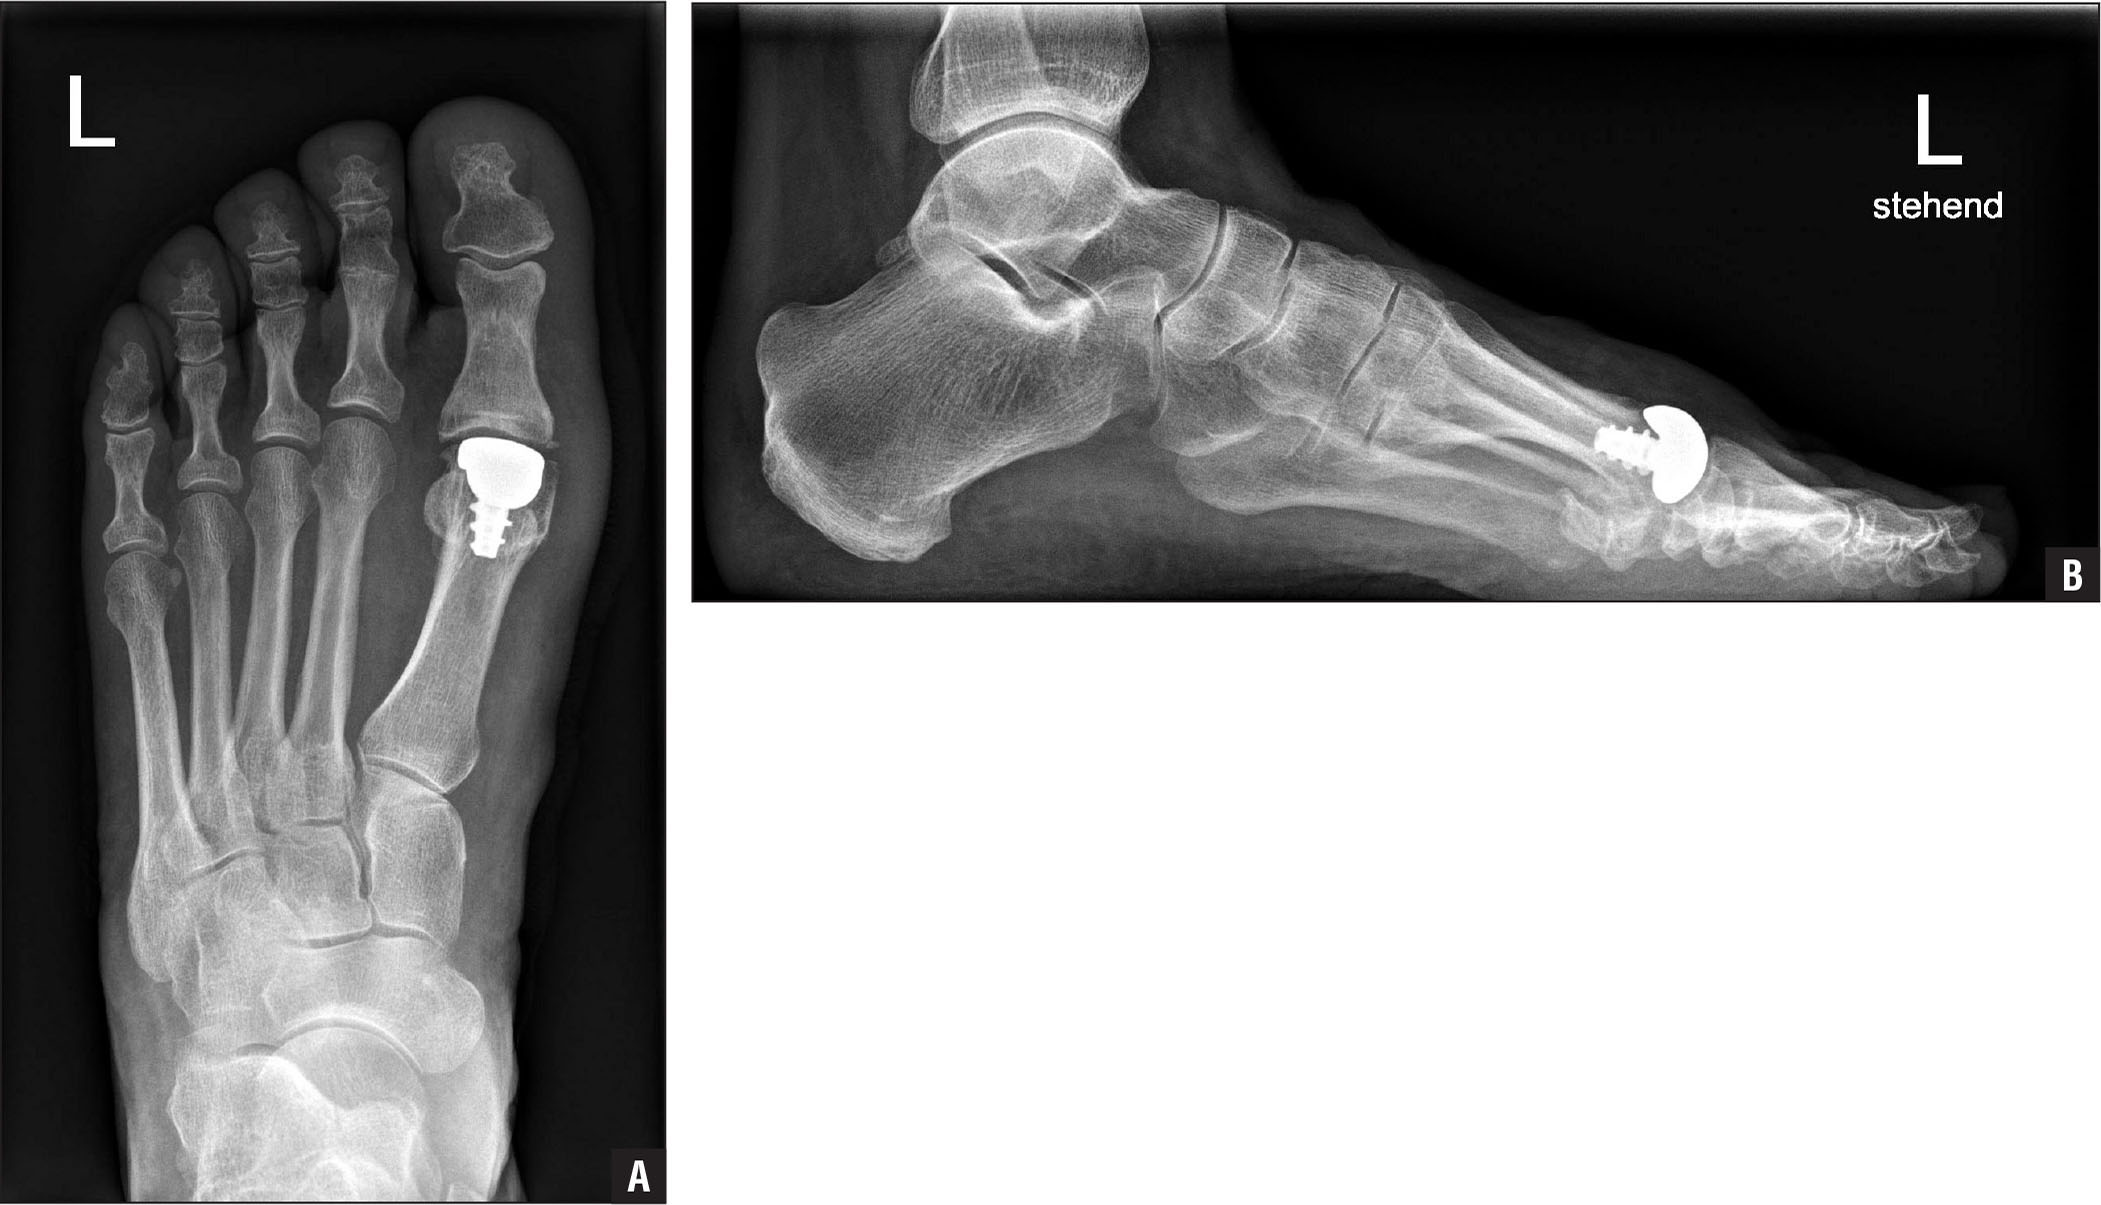 A 49-year-old patient 1 year after implantation of a first metatarsophalangeal HemiCAP DF (Arthrosurface Inc, Franklin, Massachusetts) hemiarthroplasty prosthesis with dorsal flange. Standard weight-bearing dorsoplantar (A) and lateral (B) radiographs of the foot.